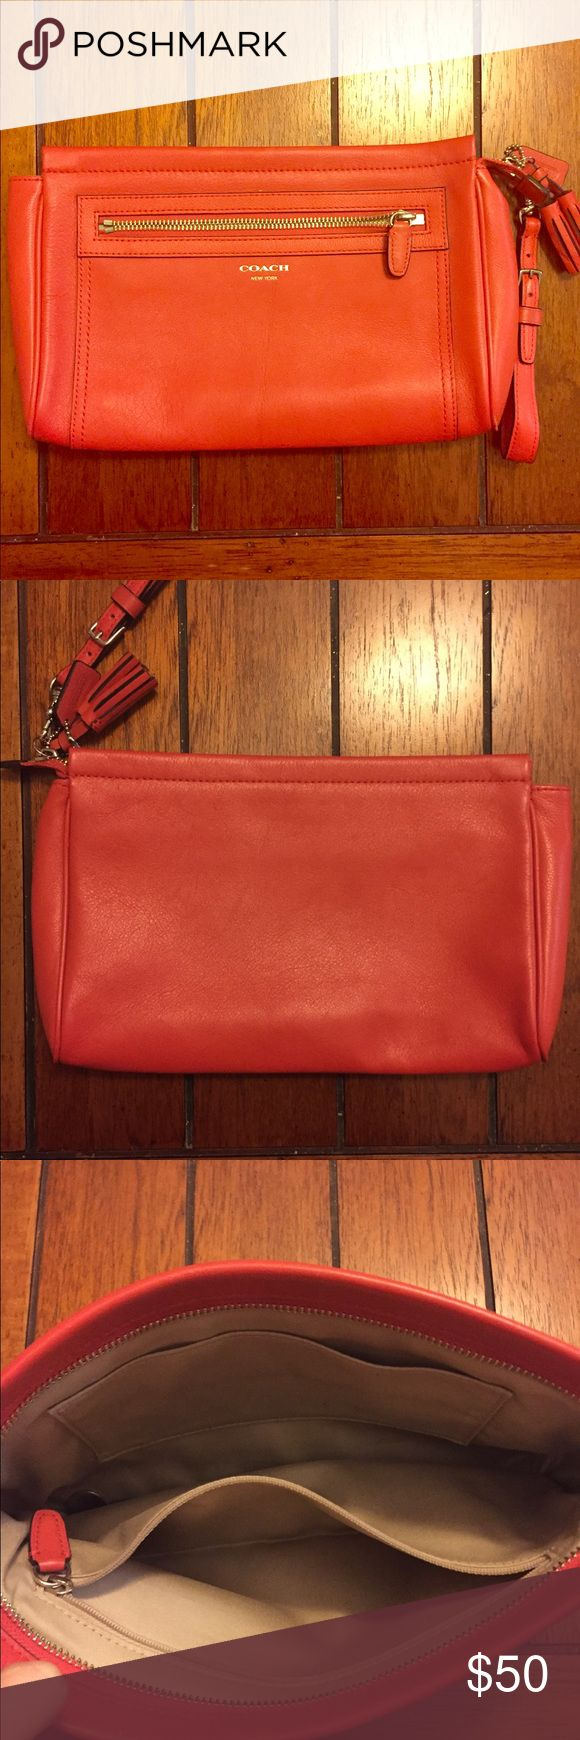 Coach clutch Red Coach clutch with tan interior. It has only been worn a number of times and no markings or blemishes on the exterior or interior. It is the perfect clutch for spring and summer! Coach Bags Clutches & Wristlets